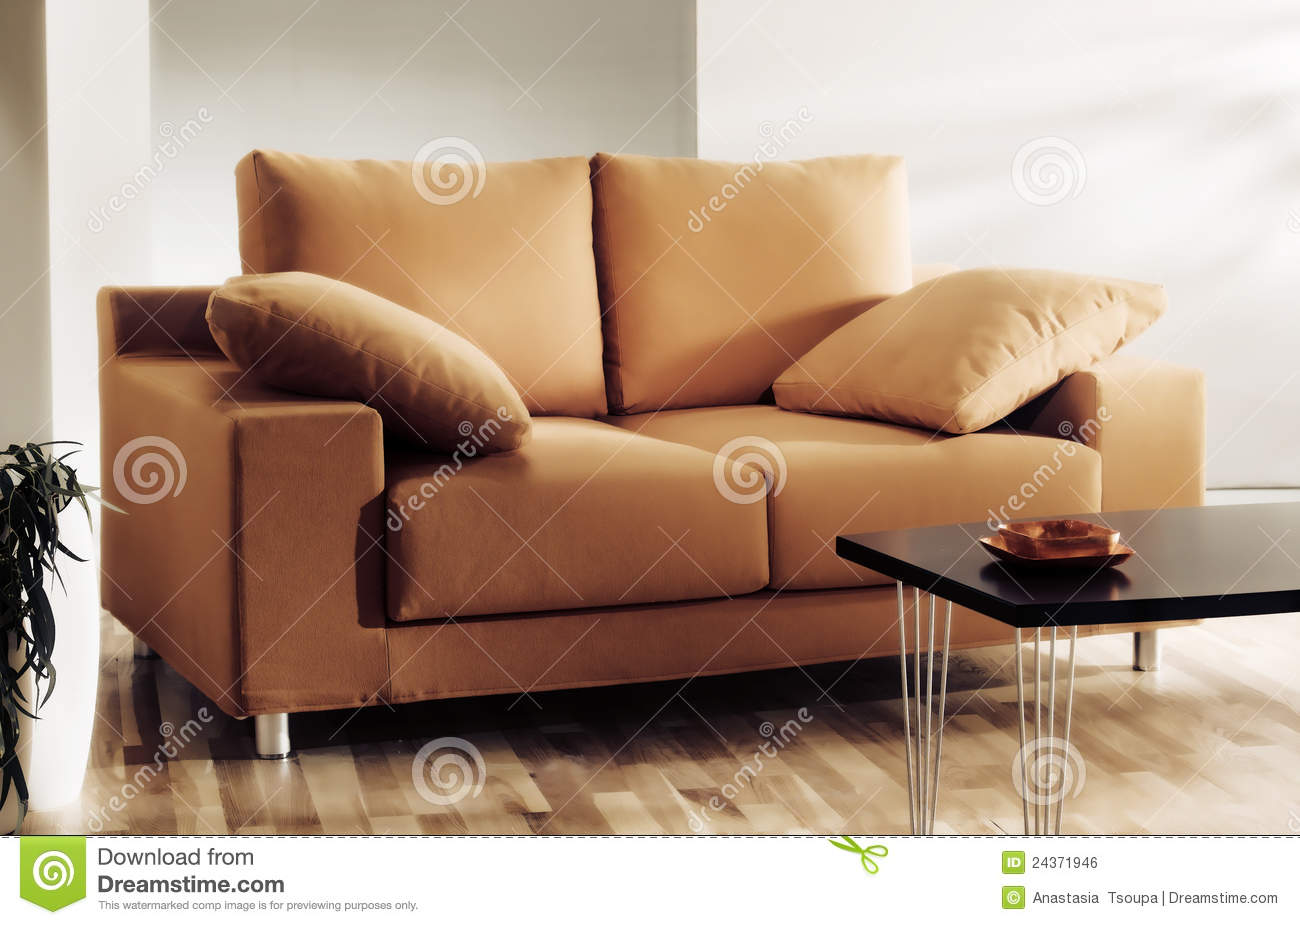 Sofa or couch in living room